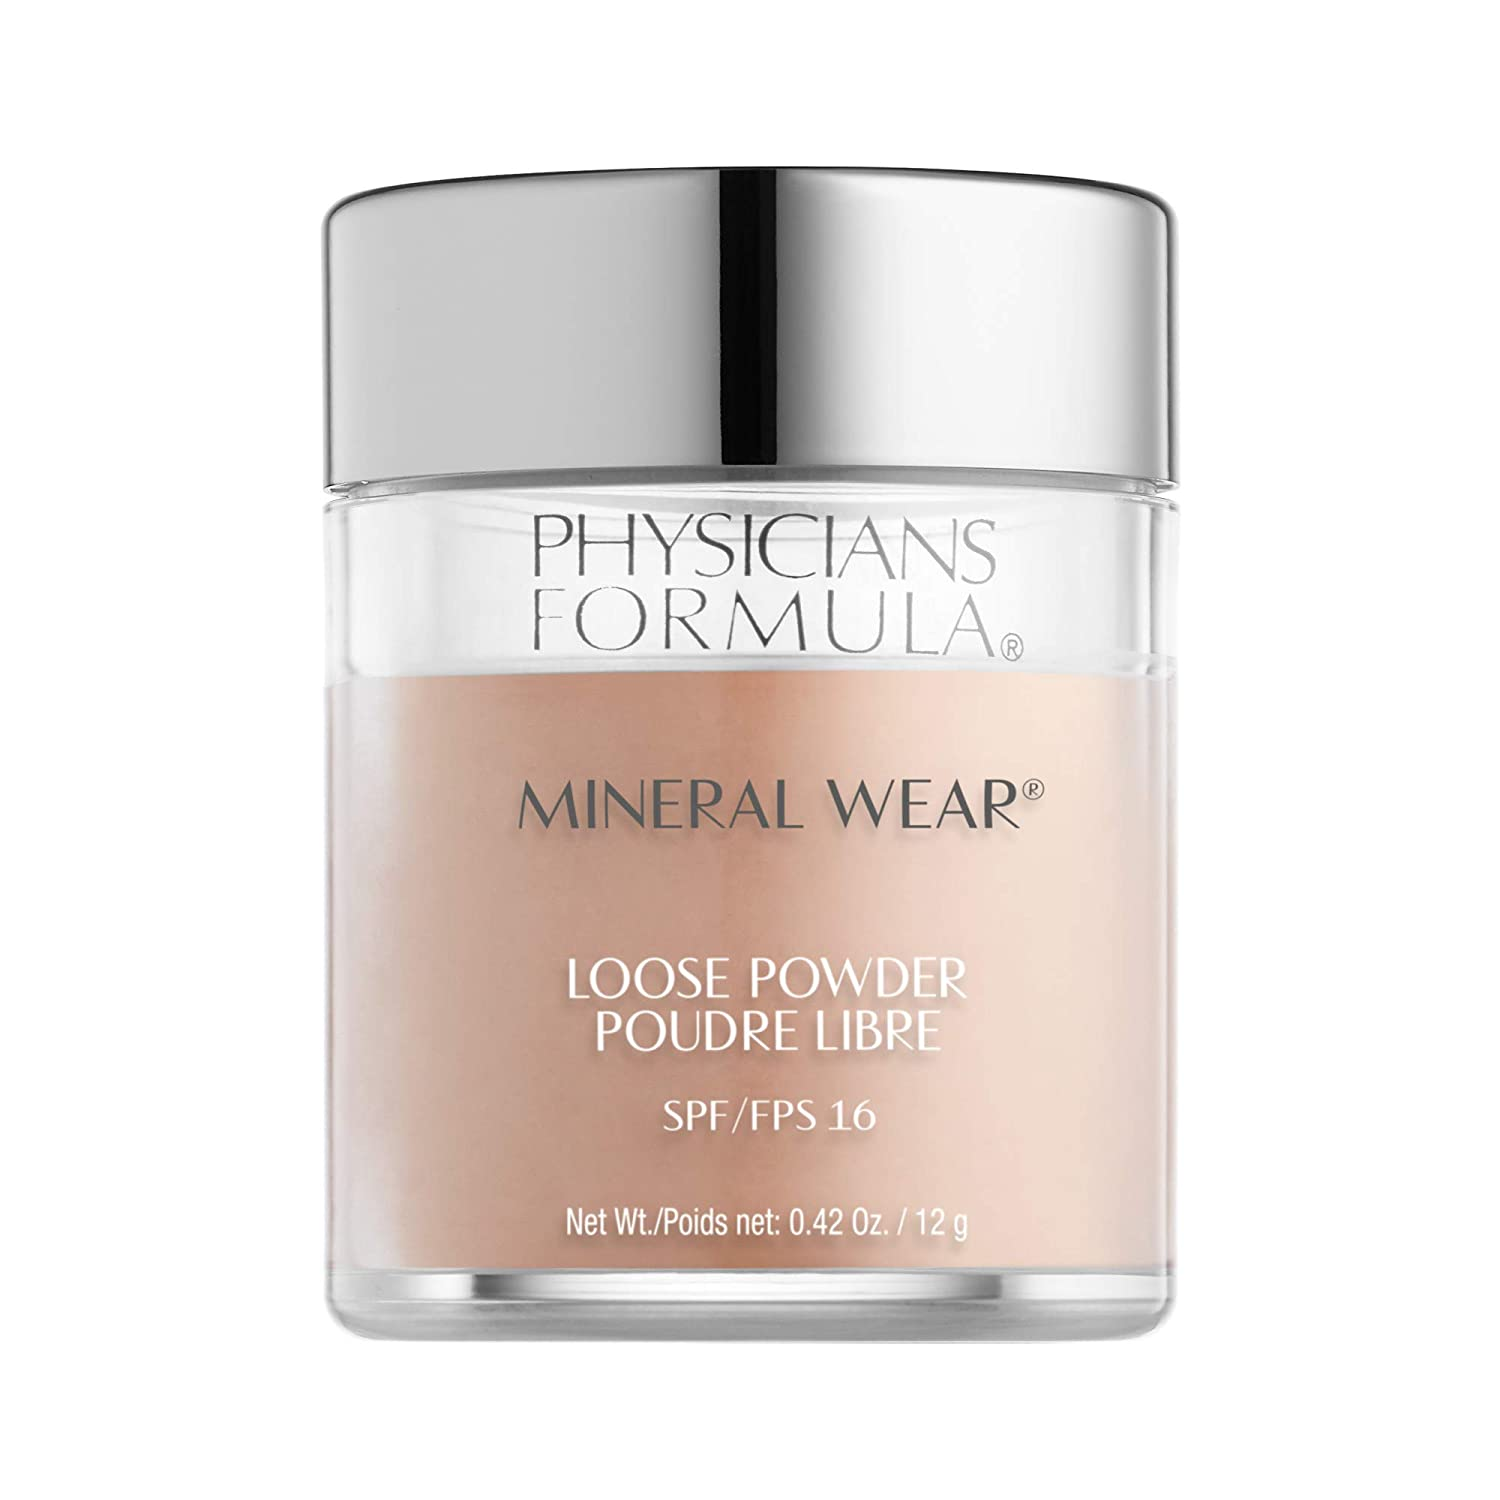 Buy Physicians Formula Mineral Wear Loose Powder Spf 16 - Creamy Natural,  Beige, 12 g Online at Low Prices in India - Amazon.in